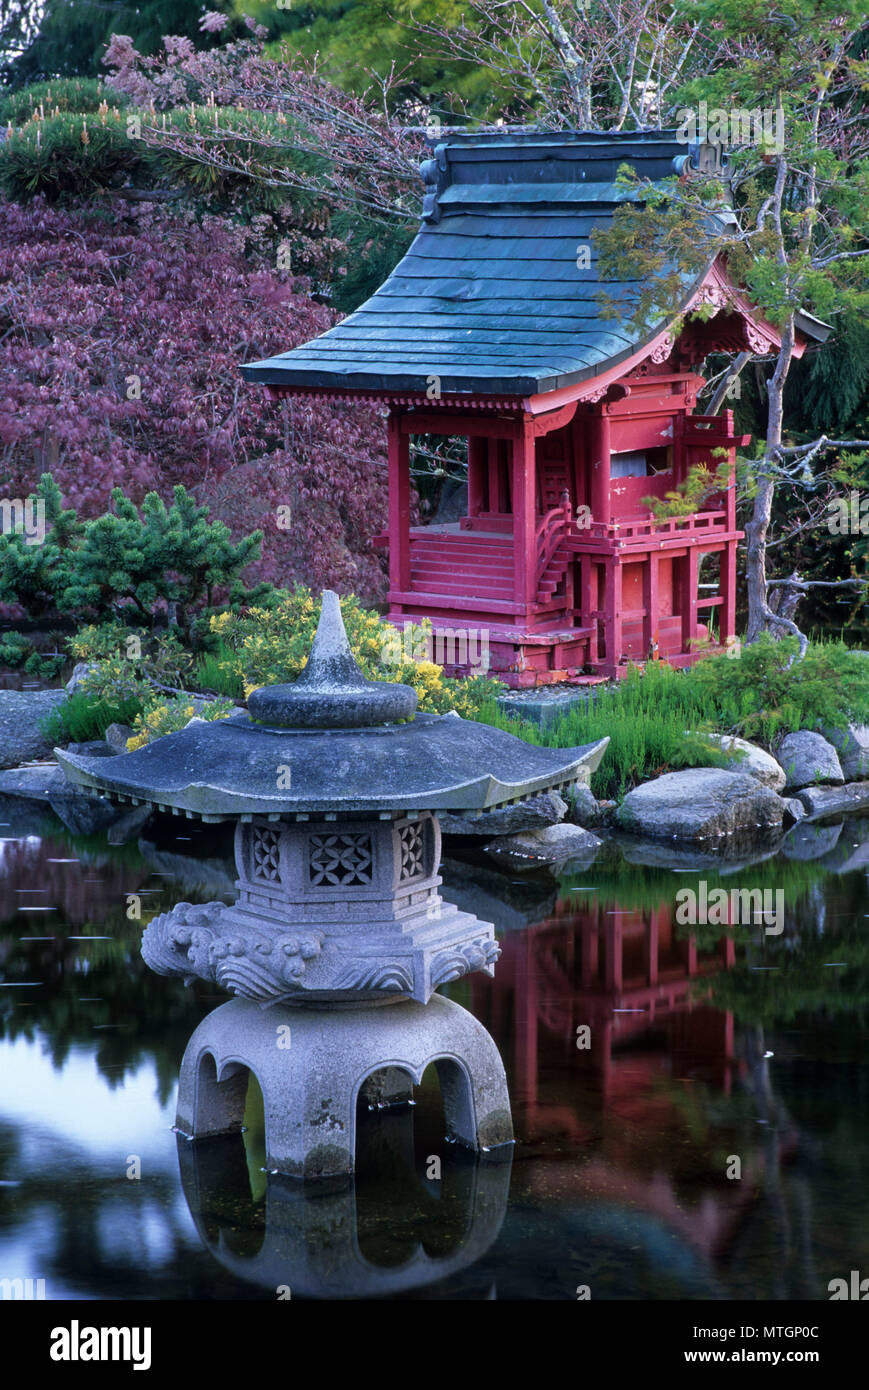 Japanese Garden, Point Defiance Park, Tacoma, Washington - Stock Image